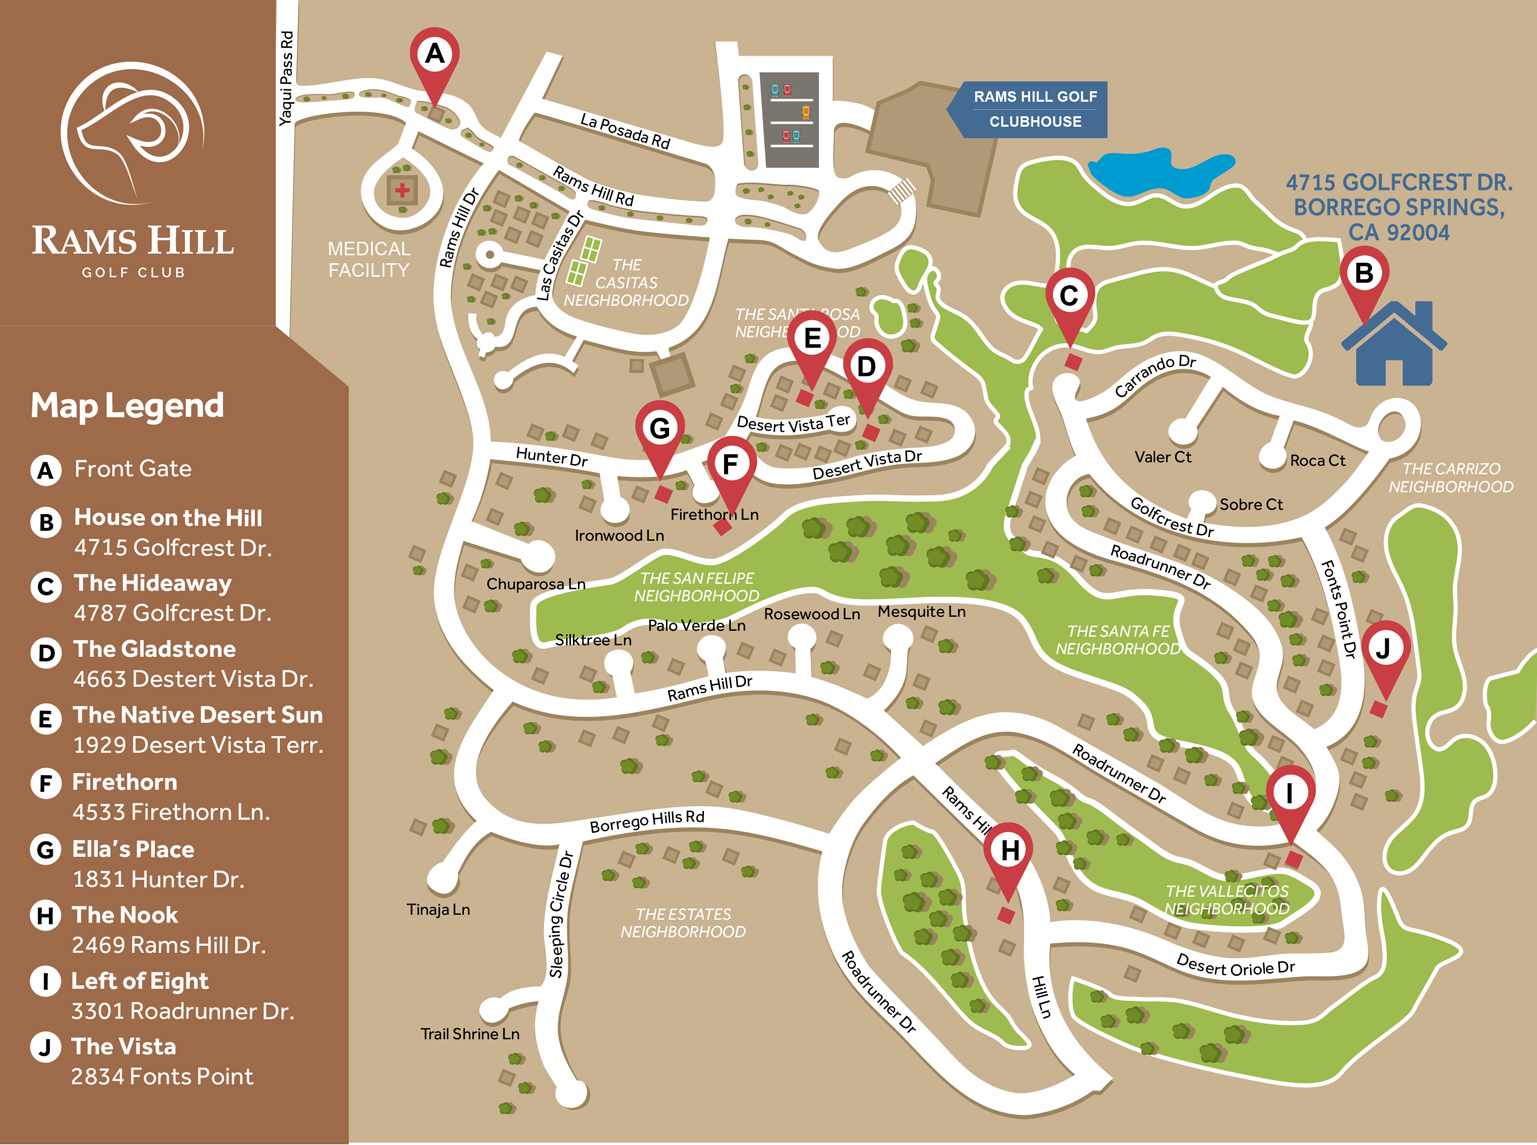 Rams Hill Golf Houses Directions and Map